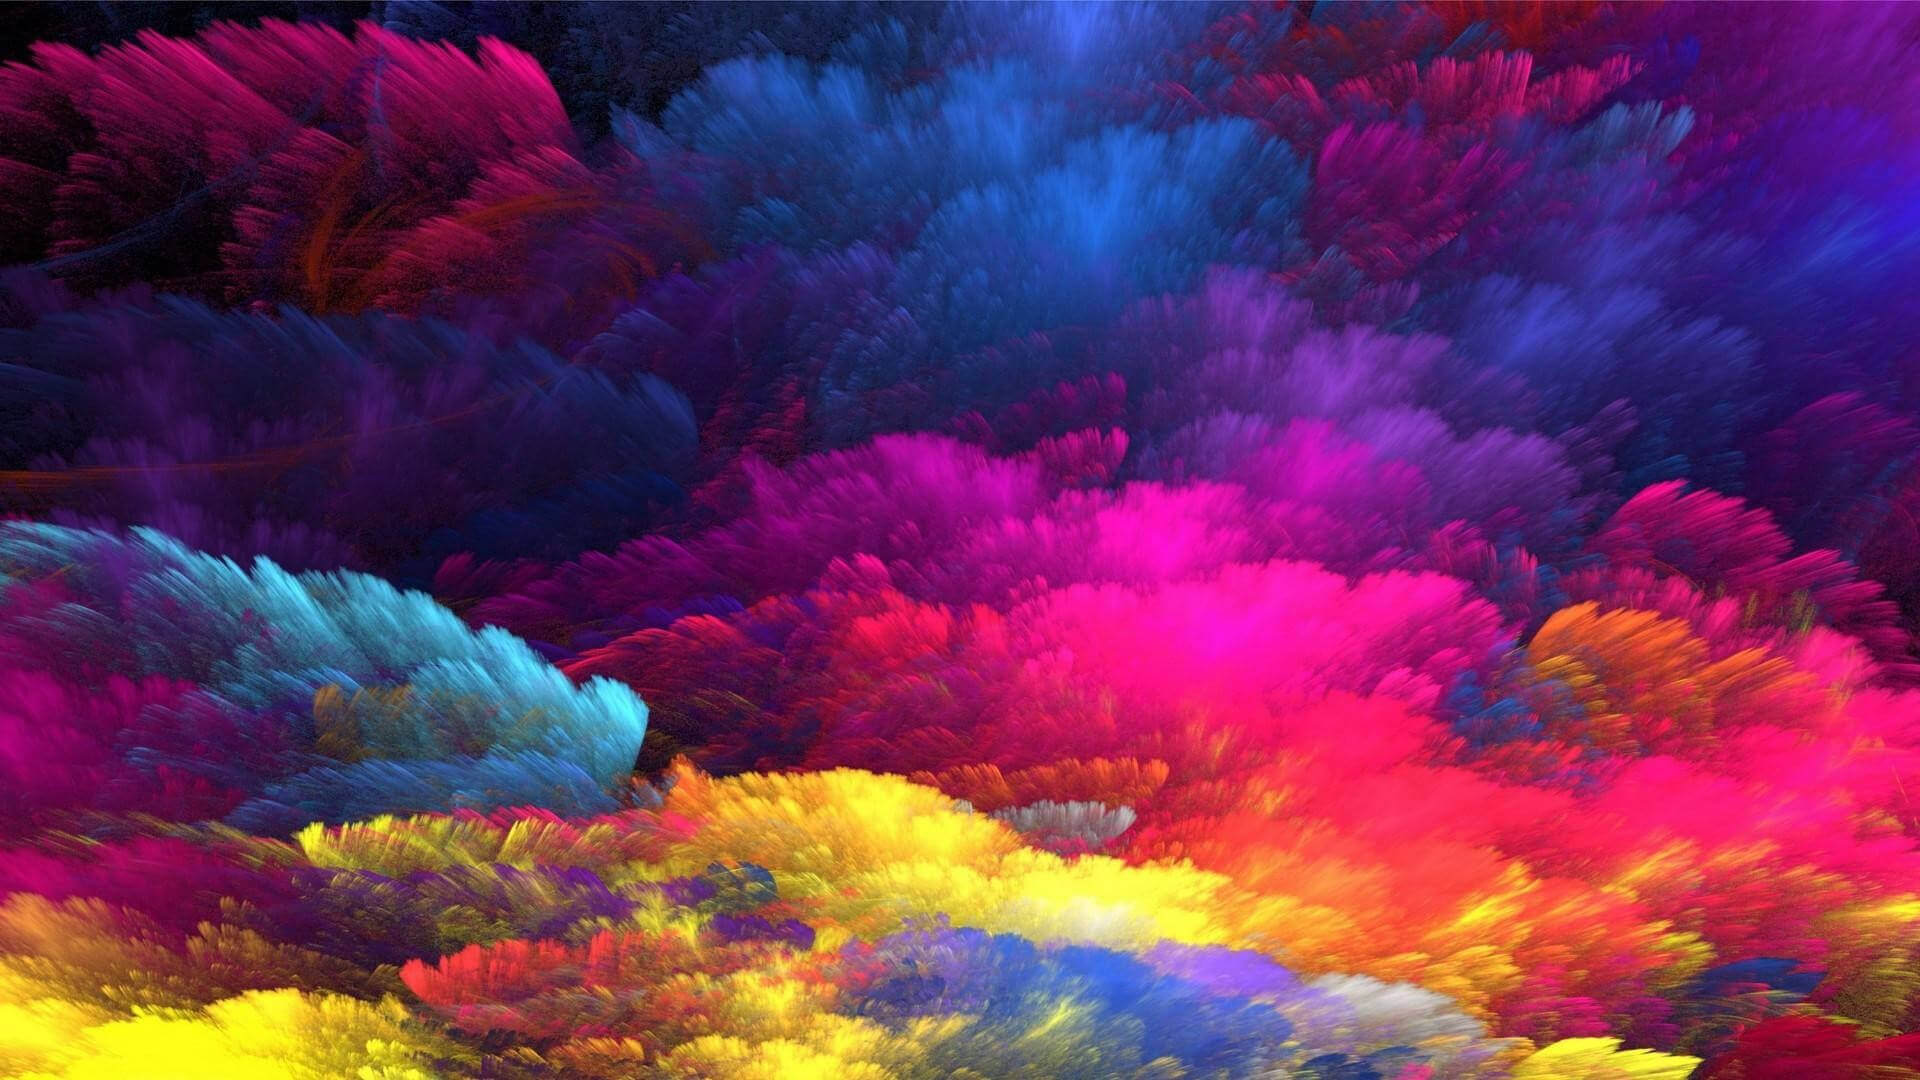 20 Mind Blowing Abstract Hd Wallpapers Blogenium Free Wallpapers